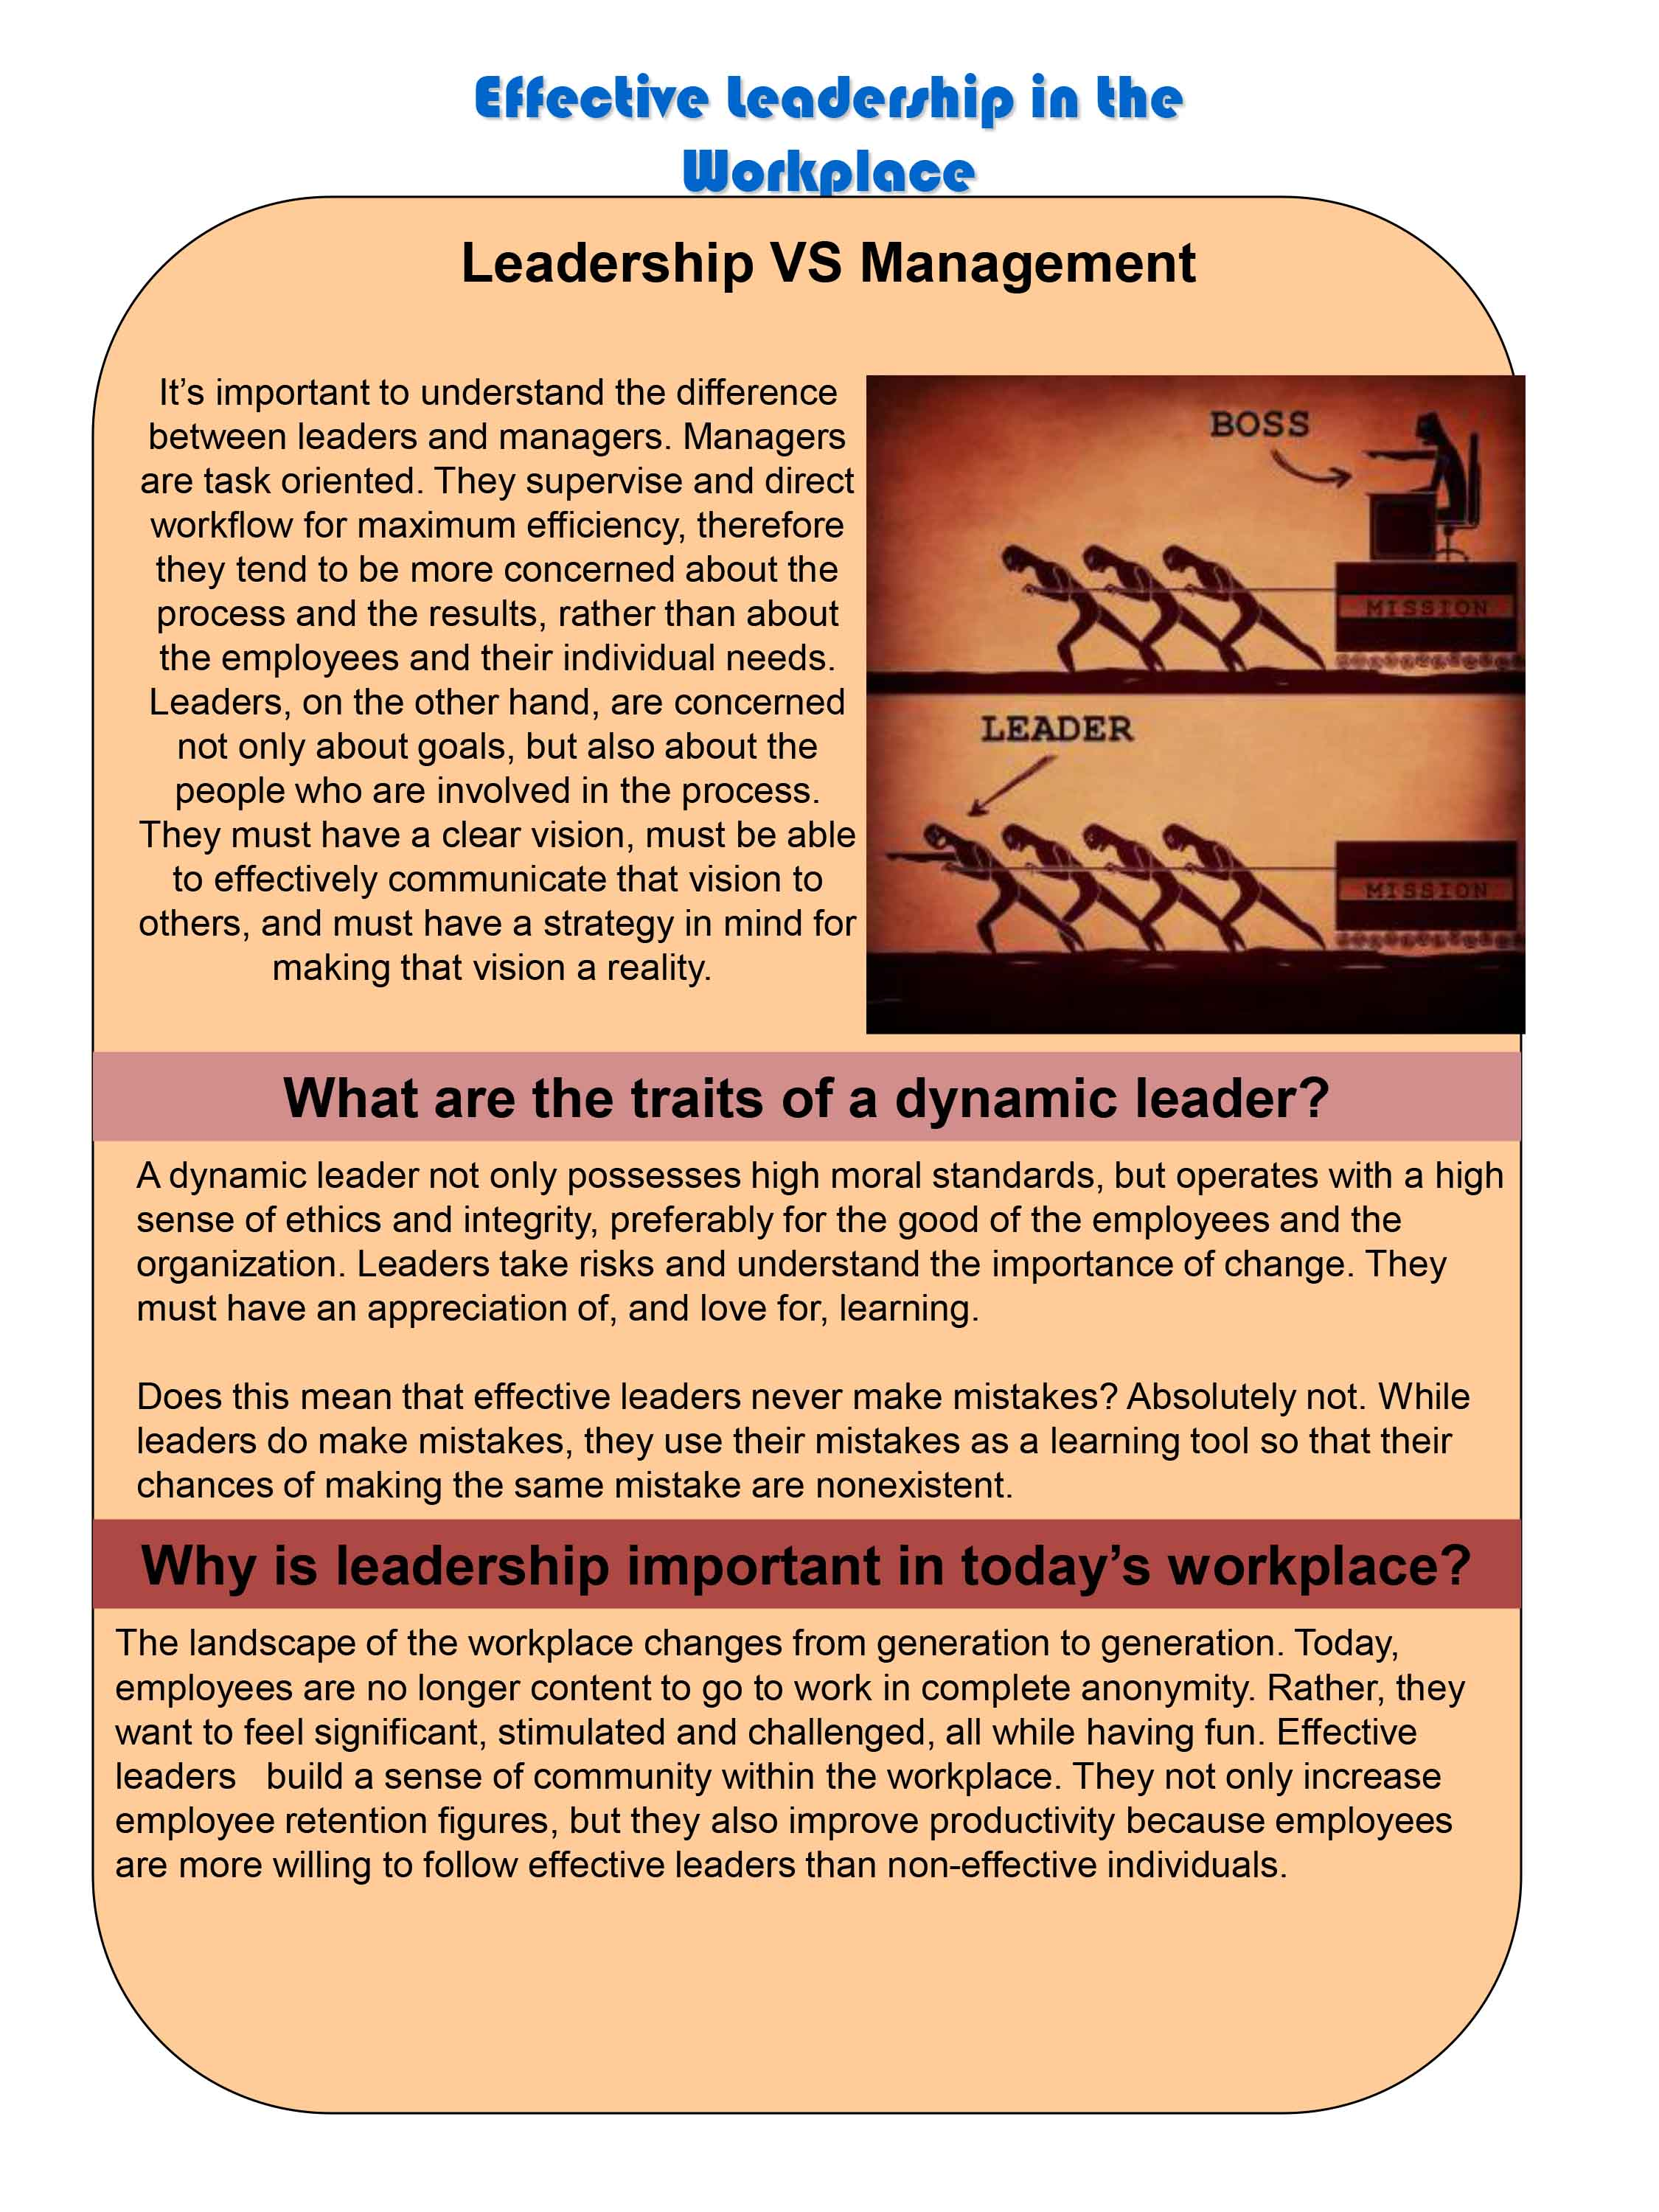 hse bulletin hablem effective leadership in the workplace